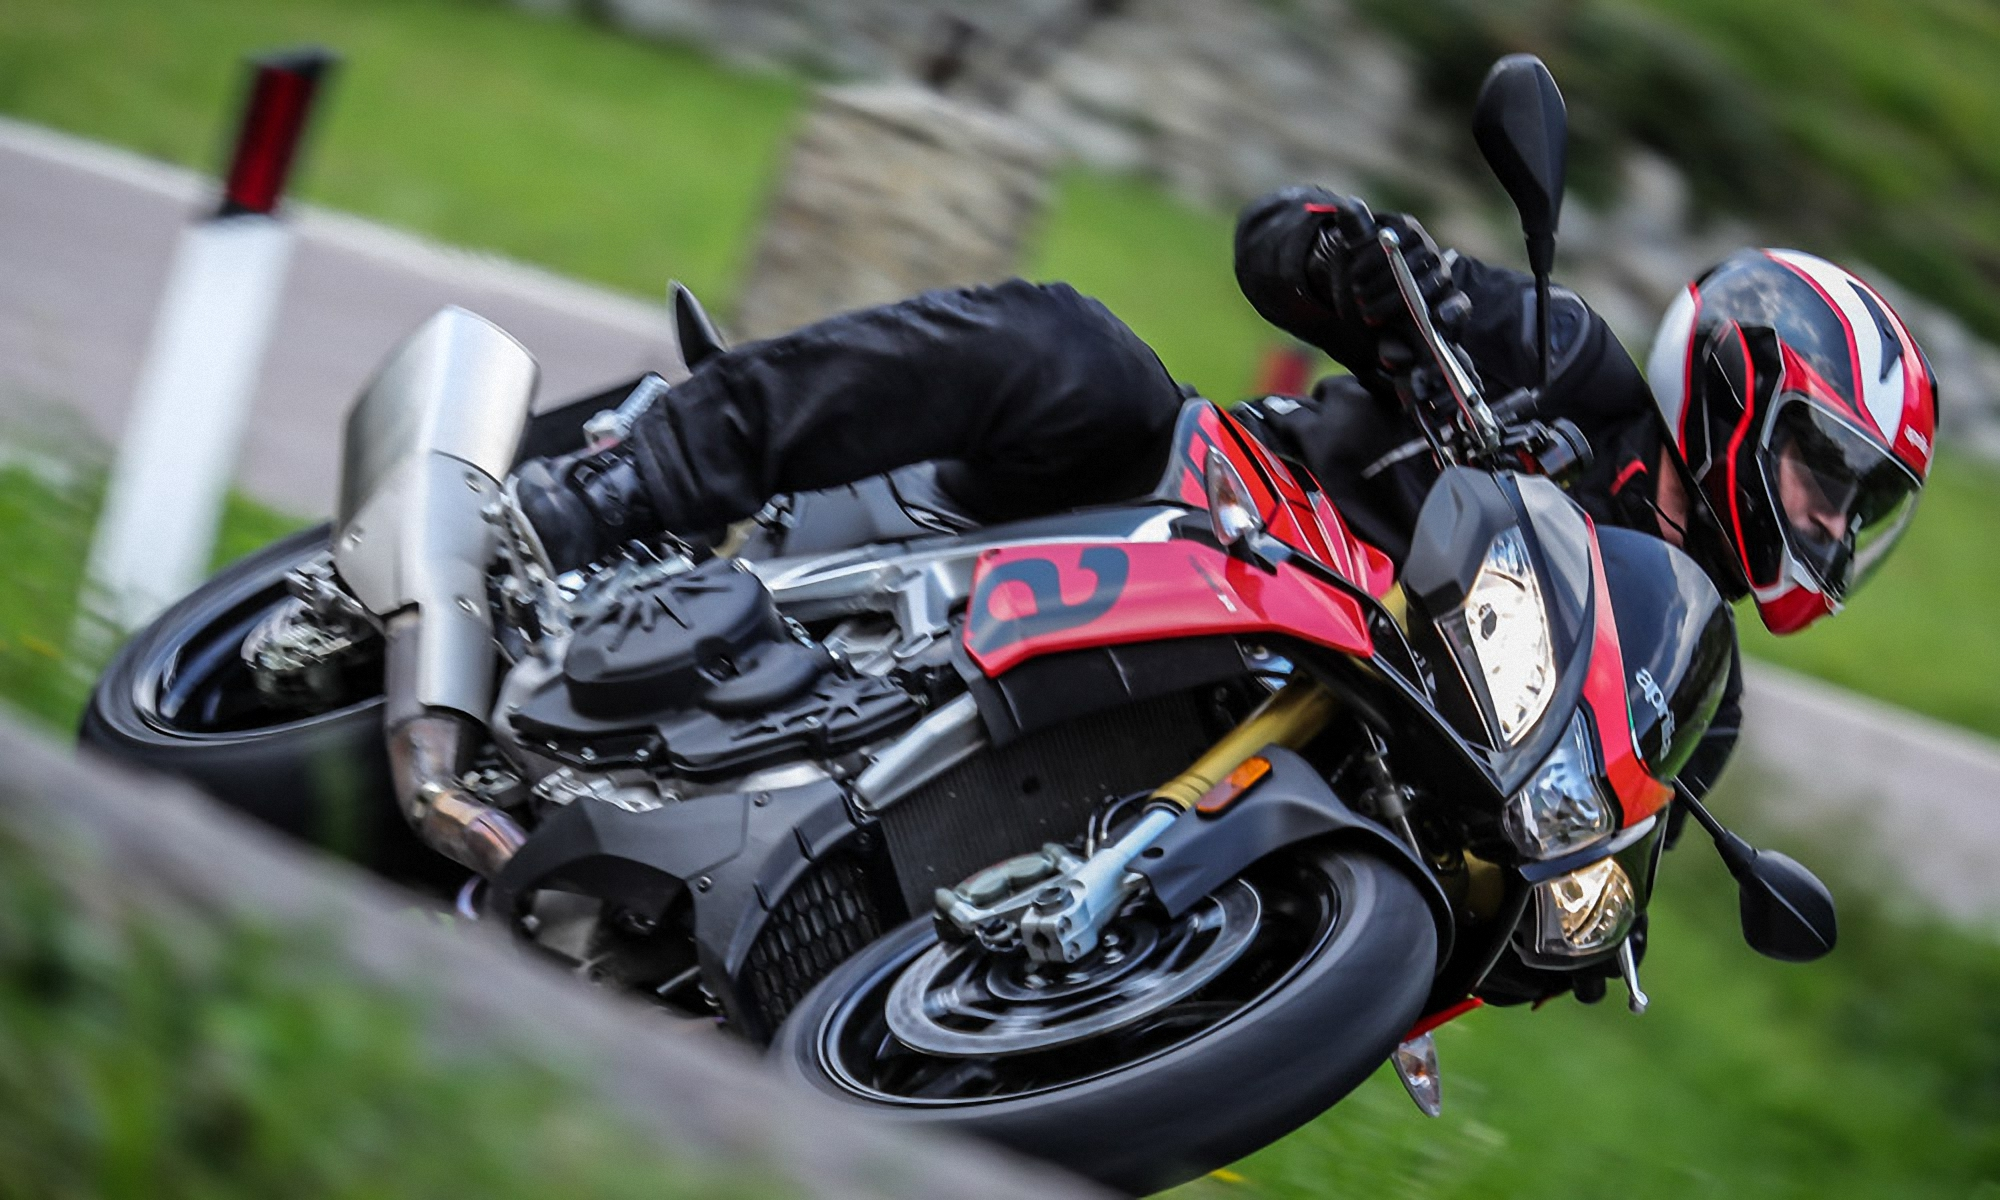 Aprilia Tuono Latest News Reviews Specifications Prices Photos And Videos Top Speed